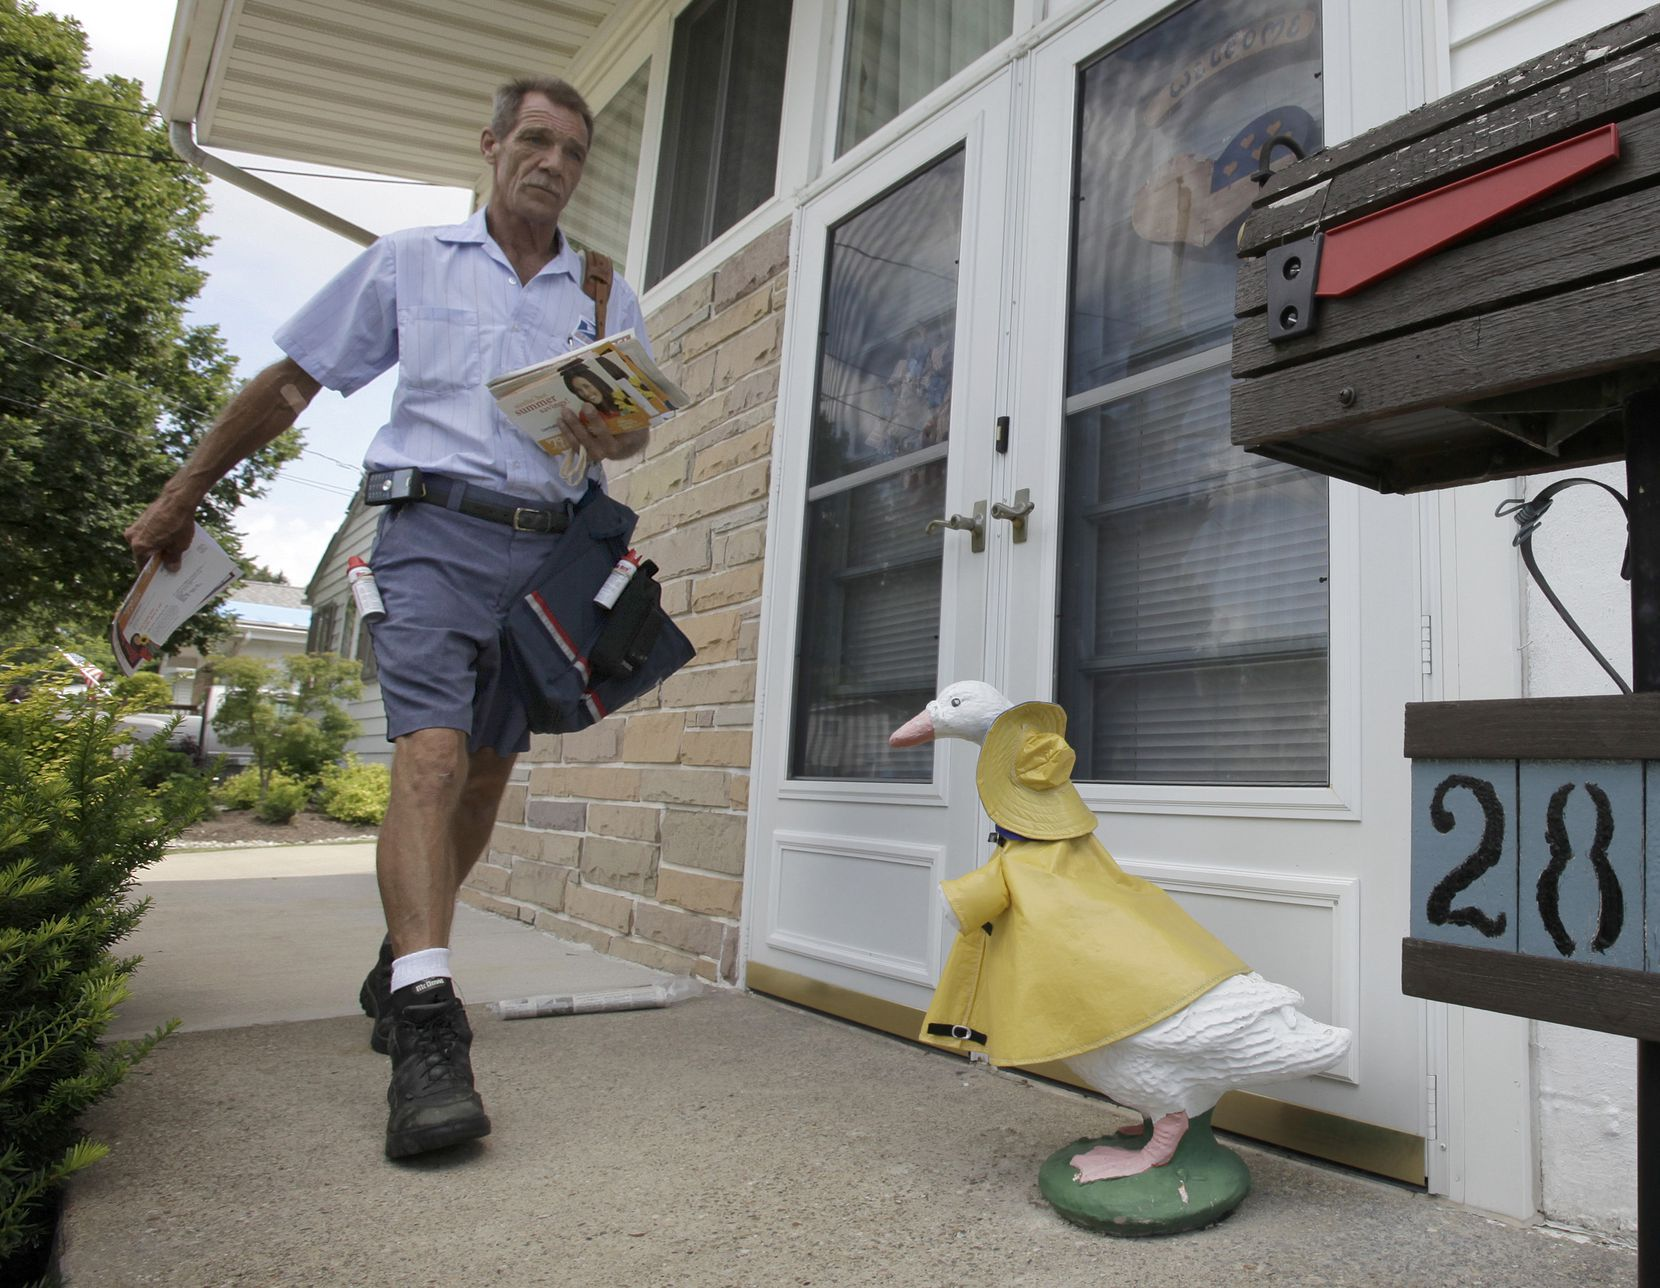 If it quacks like a duck ... Informed Delivery is a new USPS program that led to identity theft for a Grapevine man.